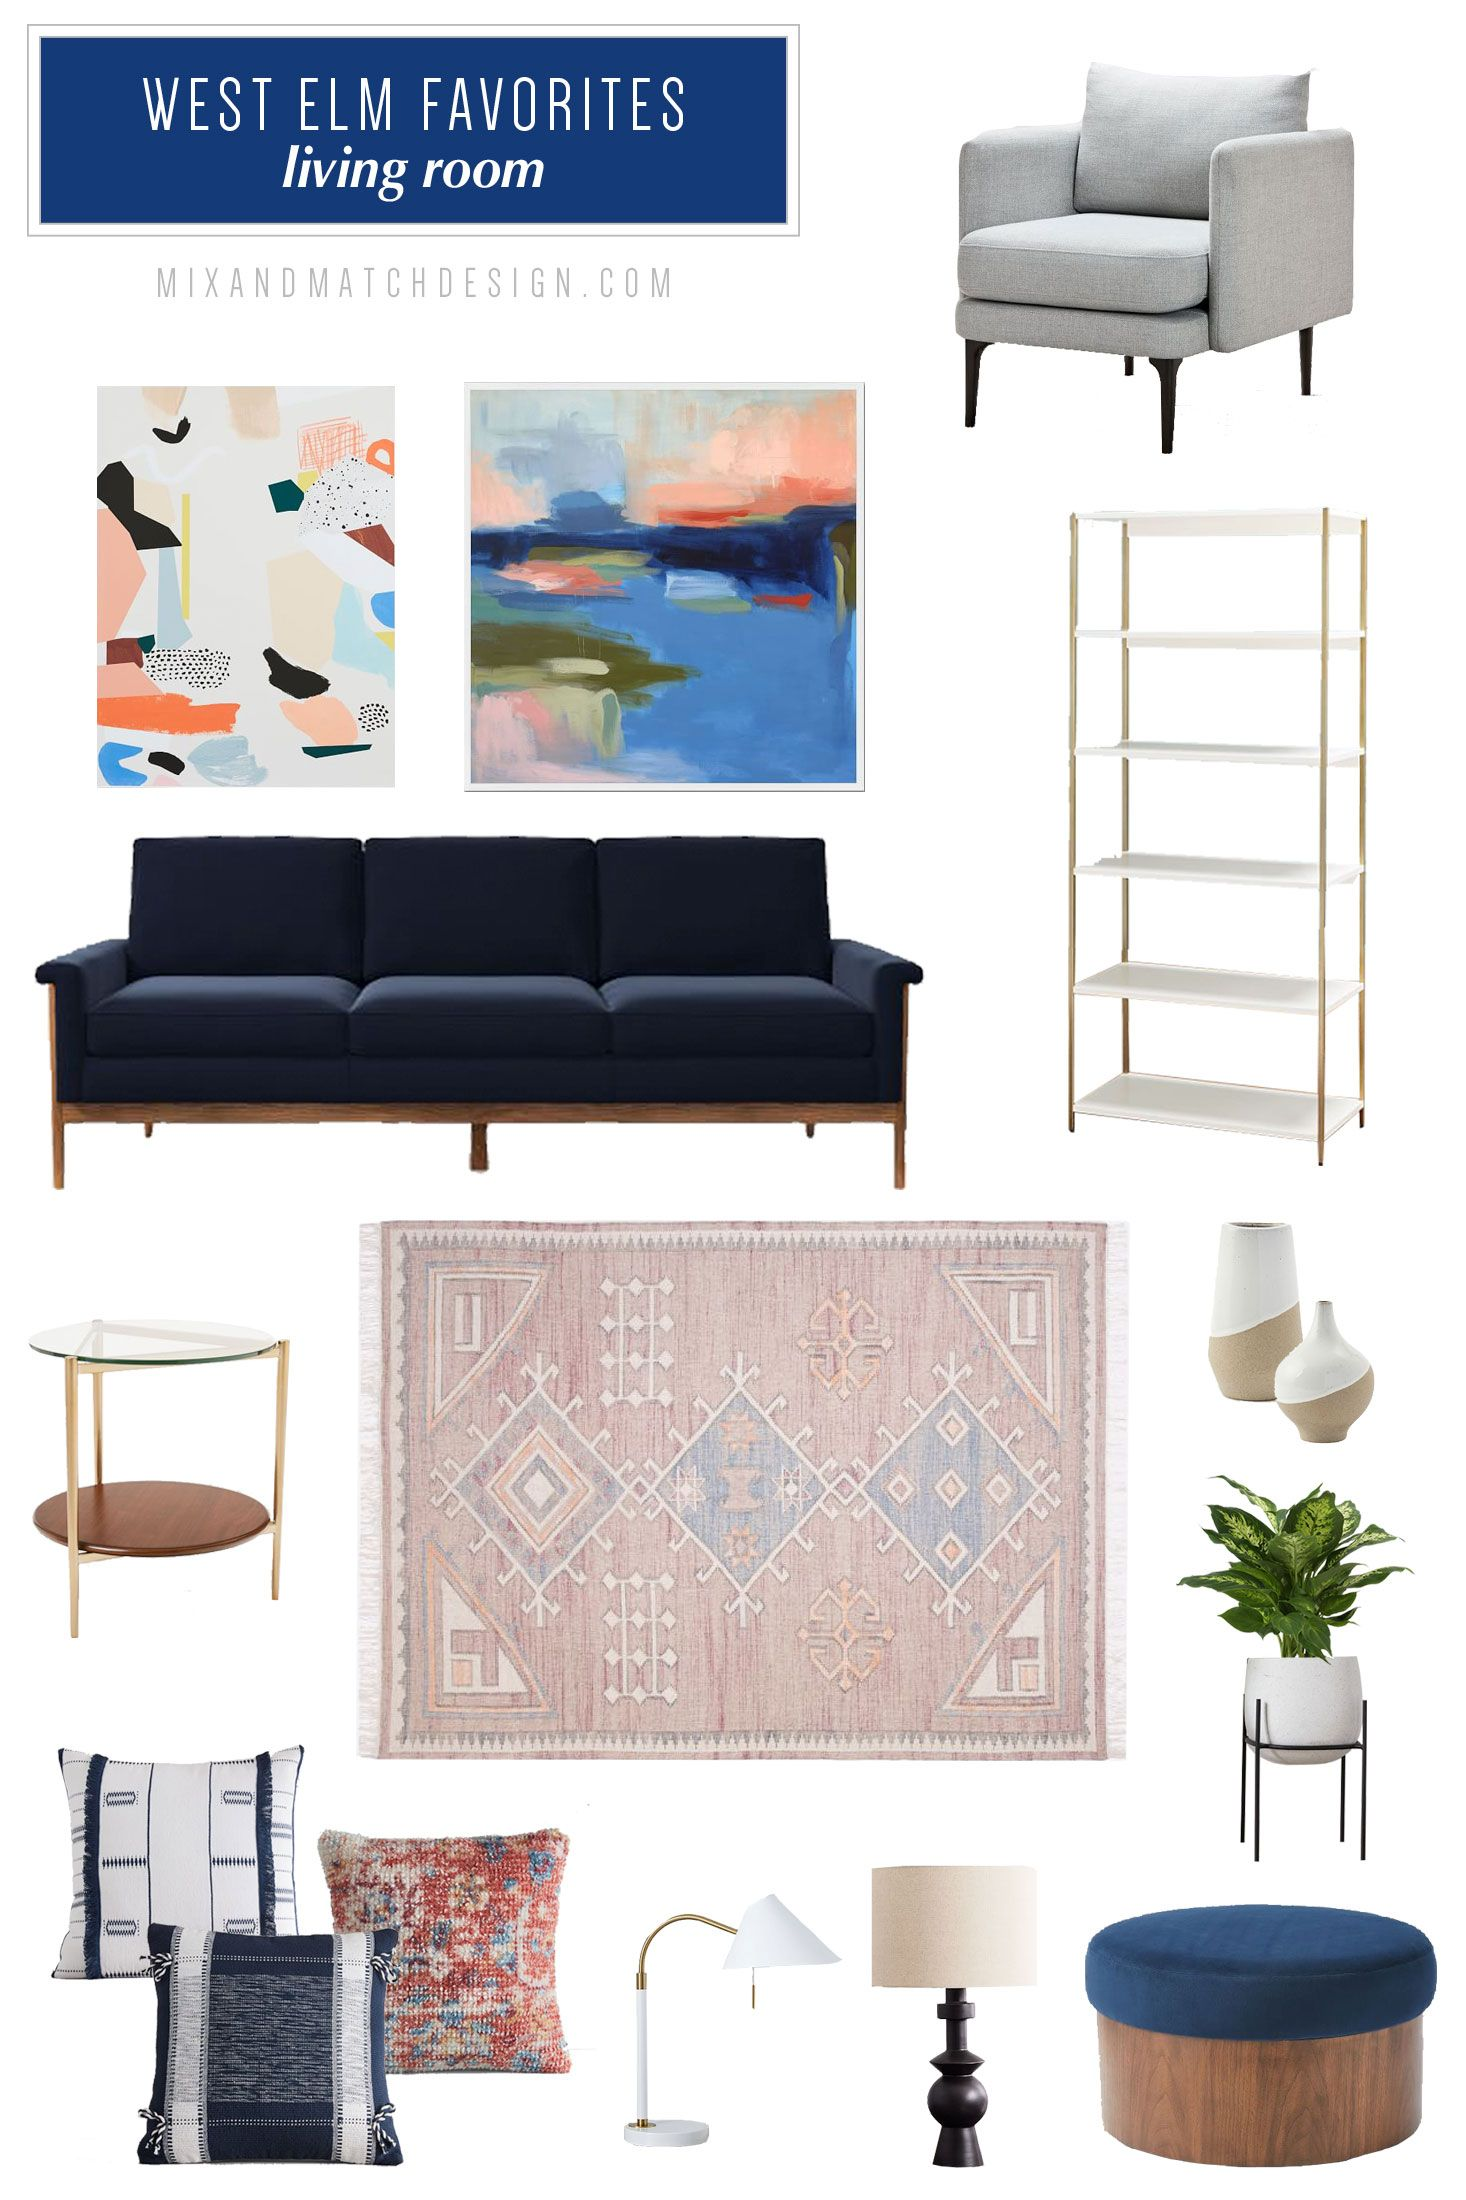 A Roundup Of The Furniture And Decor That Caught My Eye Recently At West  Elm. If Youu0027re Looking For Recommendations For Mid Century Modern,  Industrial, ...